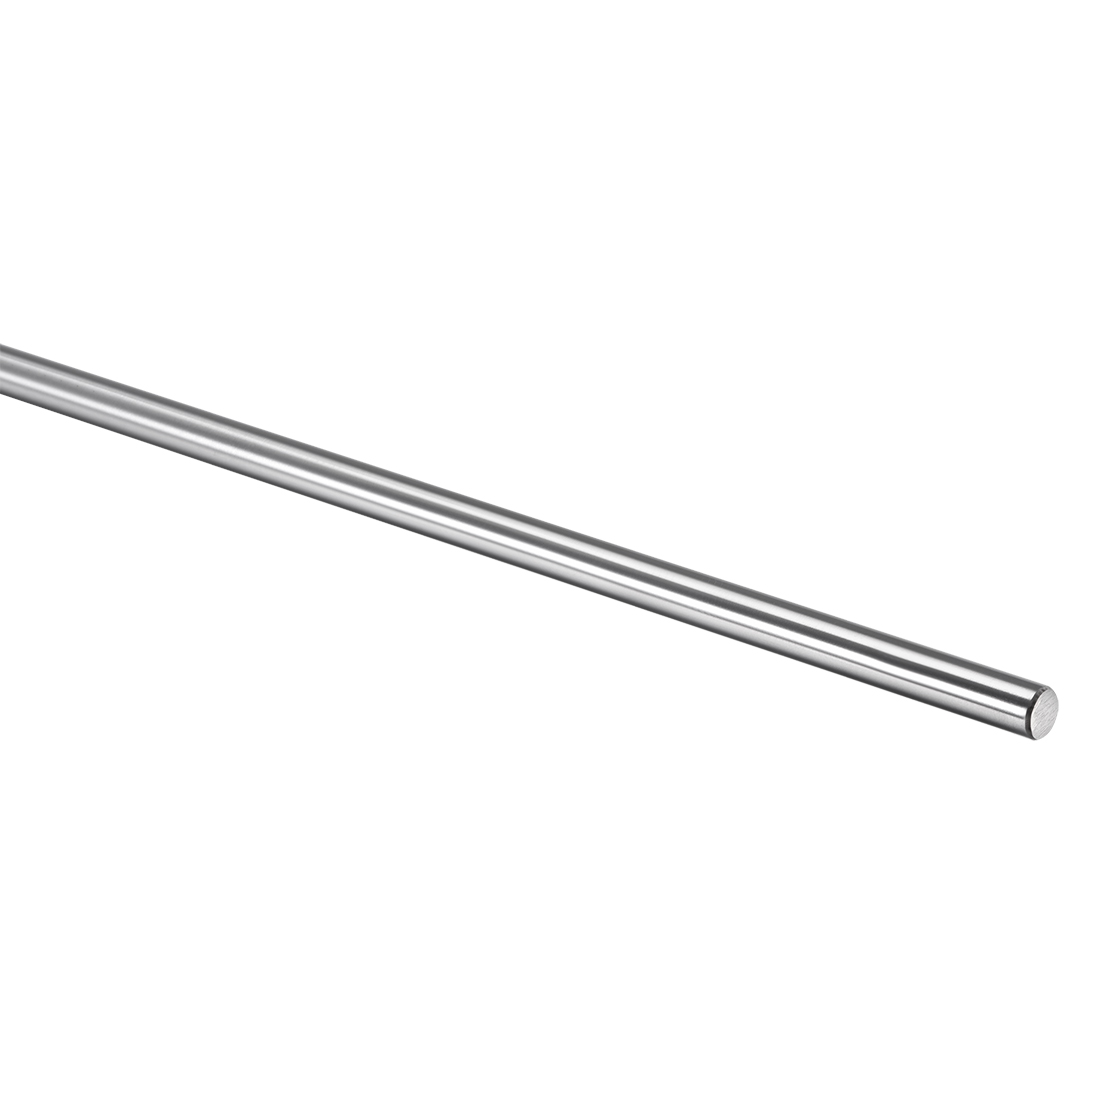 8mm x 454mm Hardened Rod Chrome Plated Linear Motion Shaft / Guide